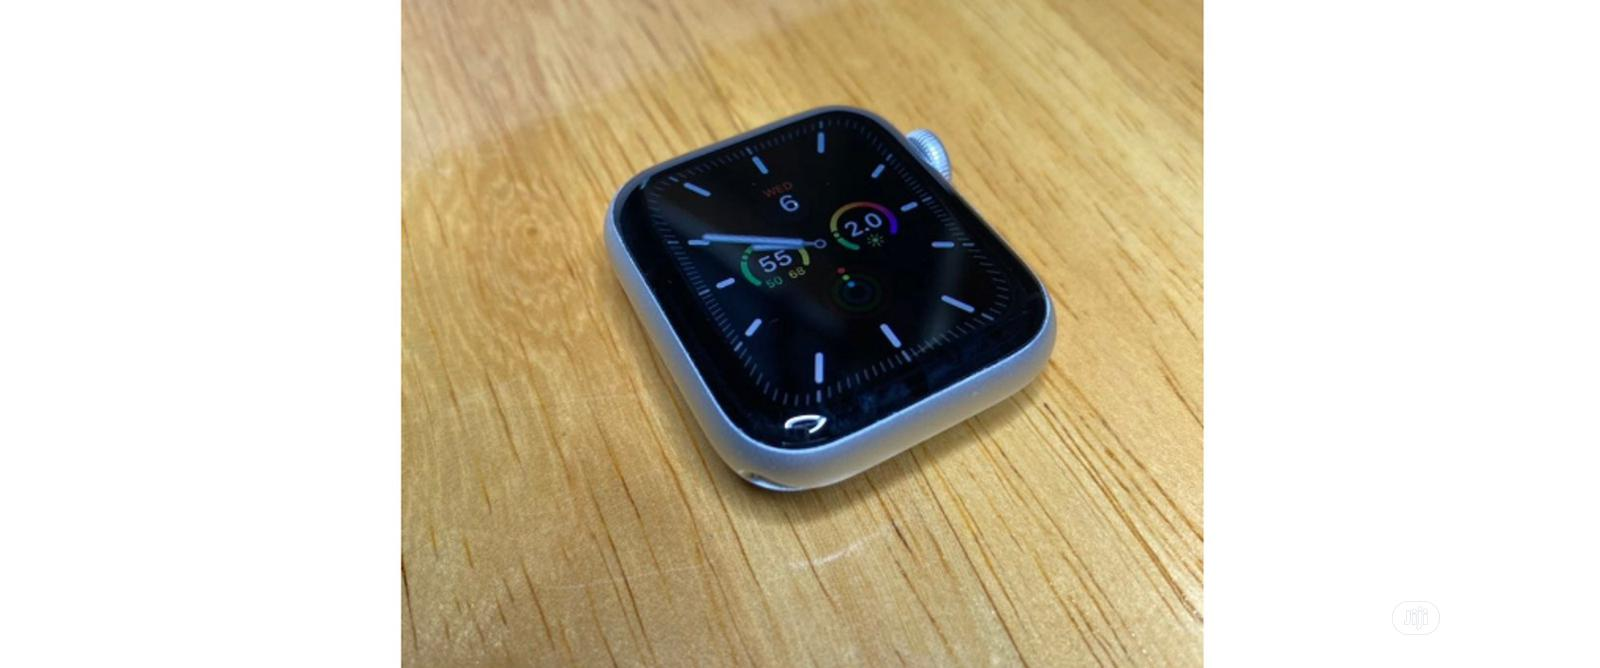 Apple Watch Series 5 (GPS, 40mm) | Smart Watches & Trackers for sale in Lekki, Lagos State, Nigeria